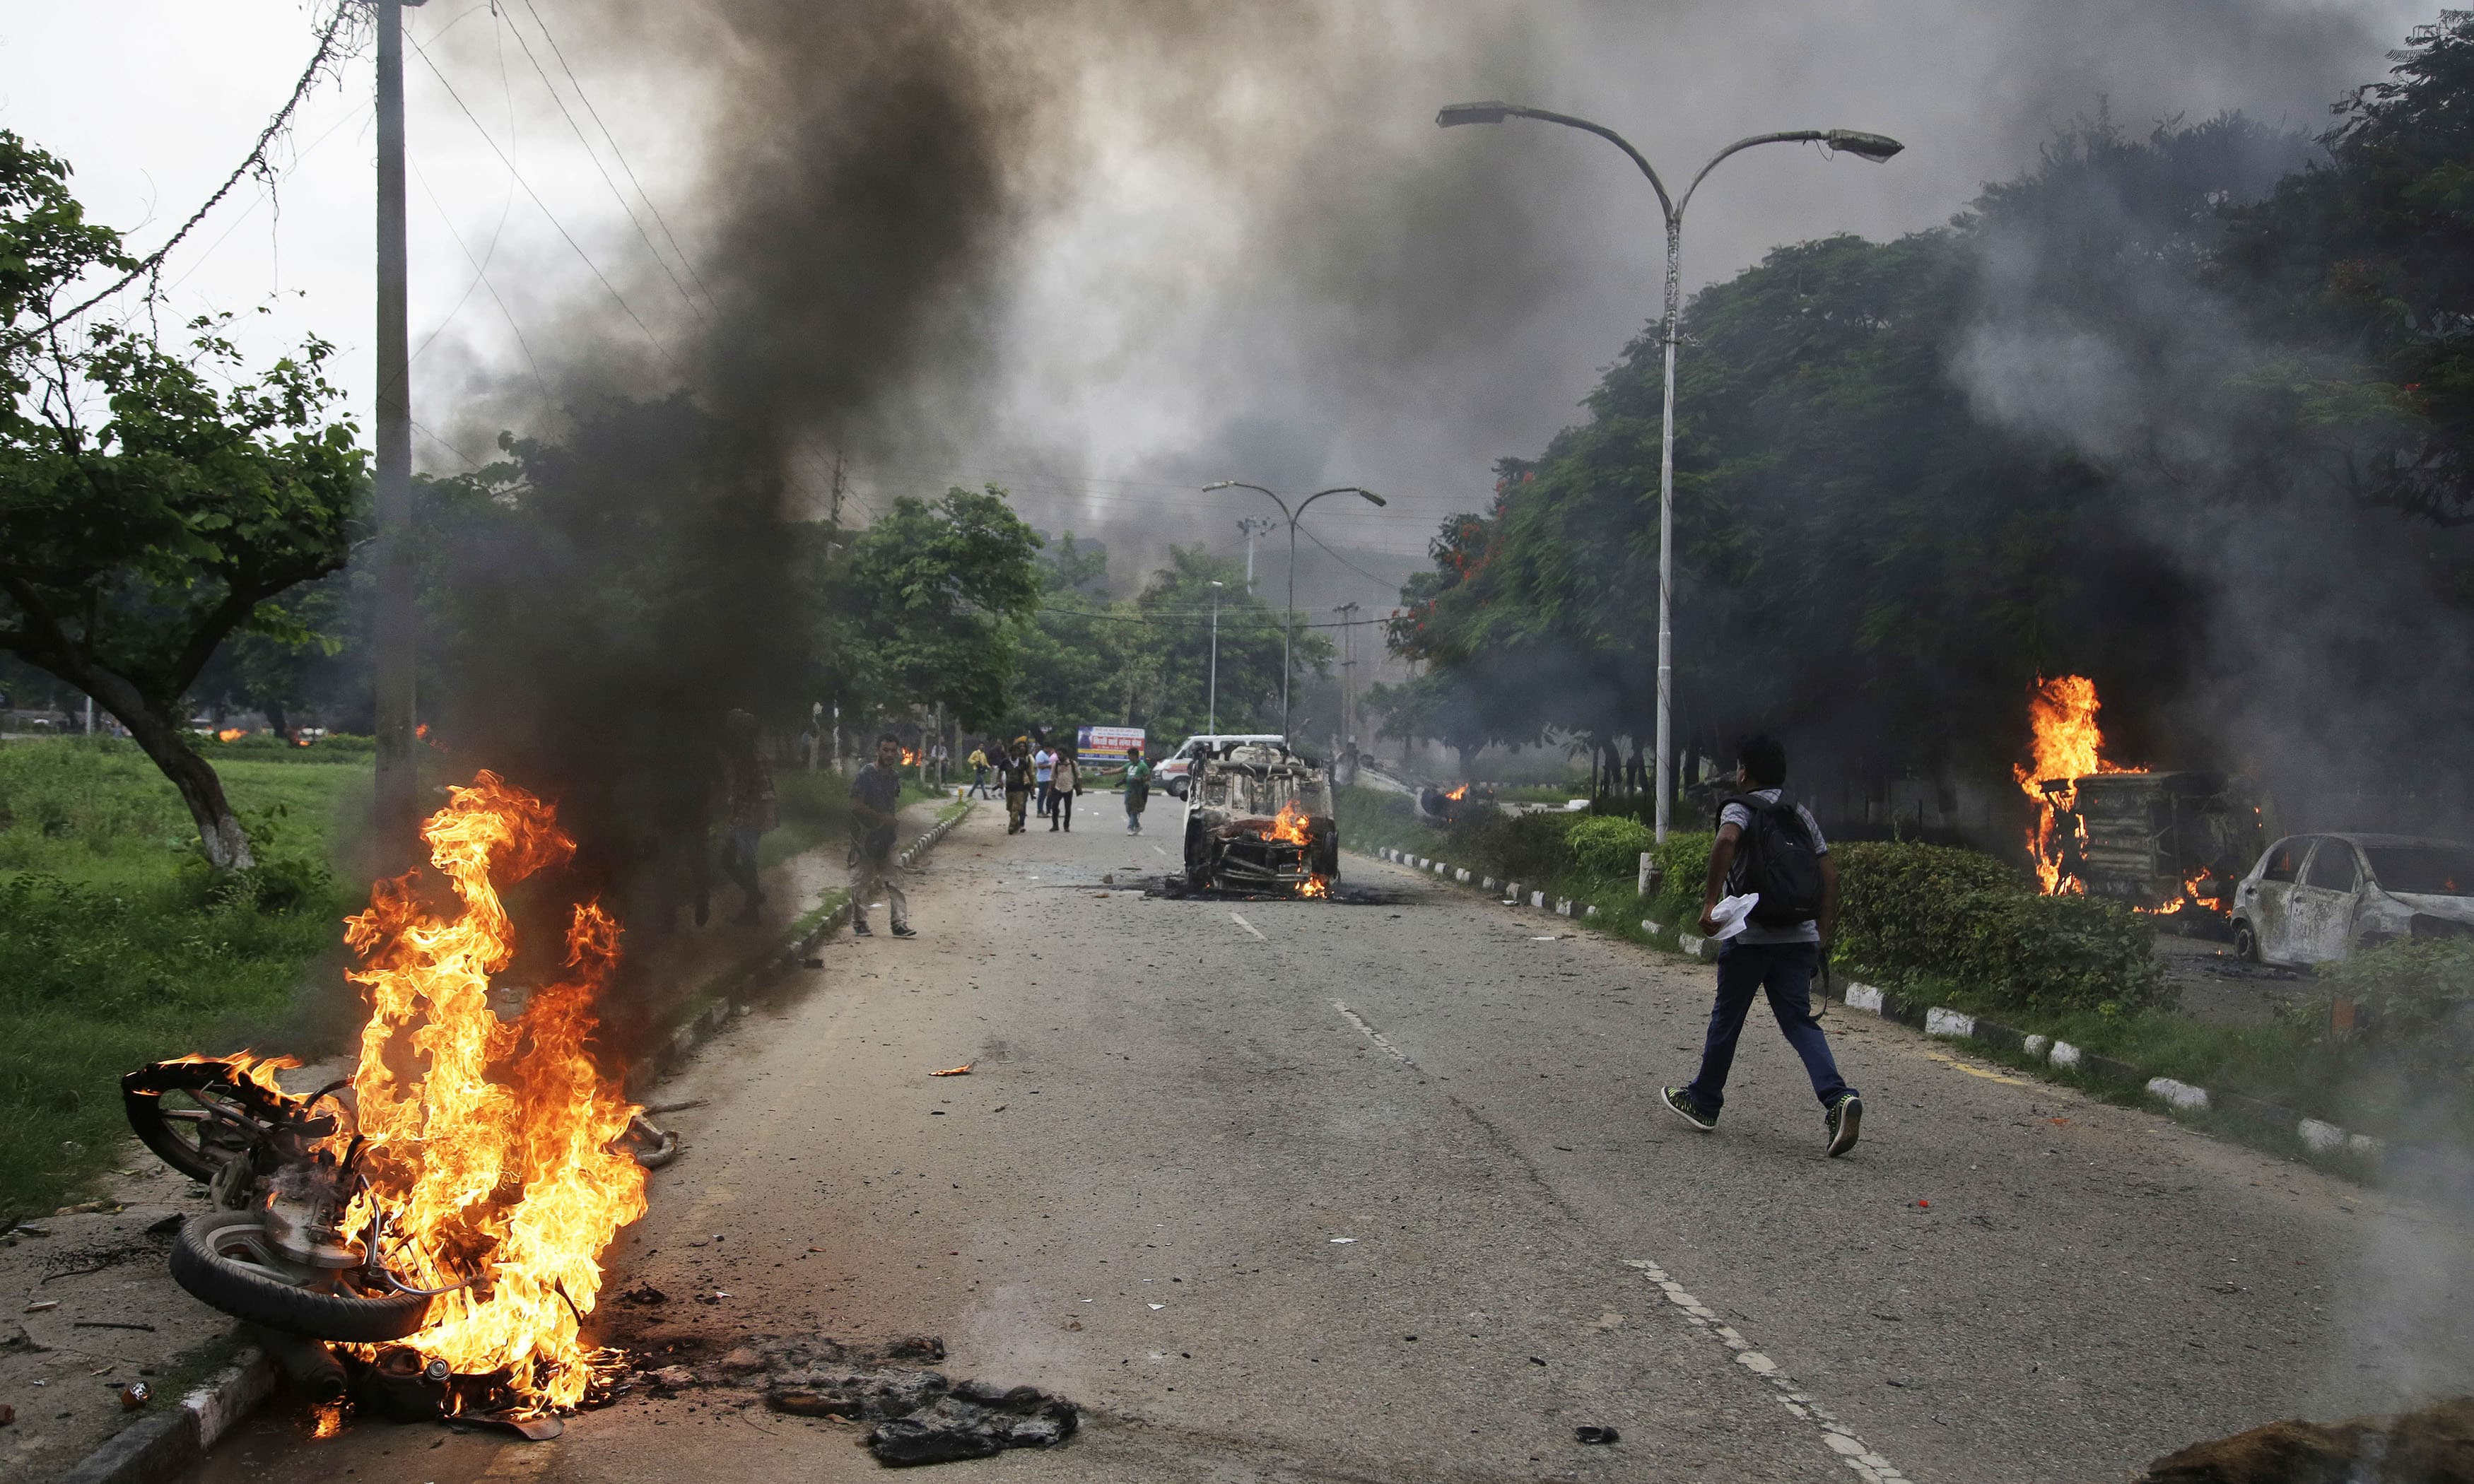 Vehicles set alight by Dera Sacha Sauda sect members burn in the streets of in Panchkula, India, Friday, Aug 25. —AP